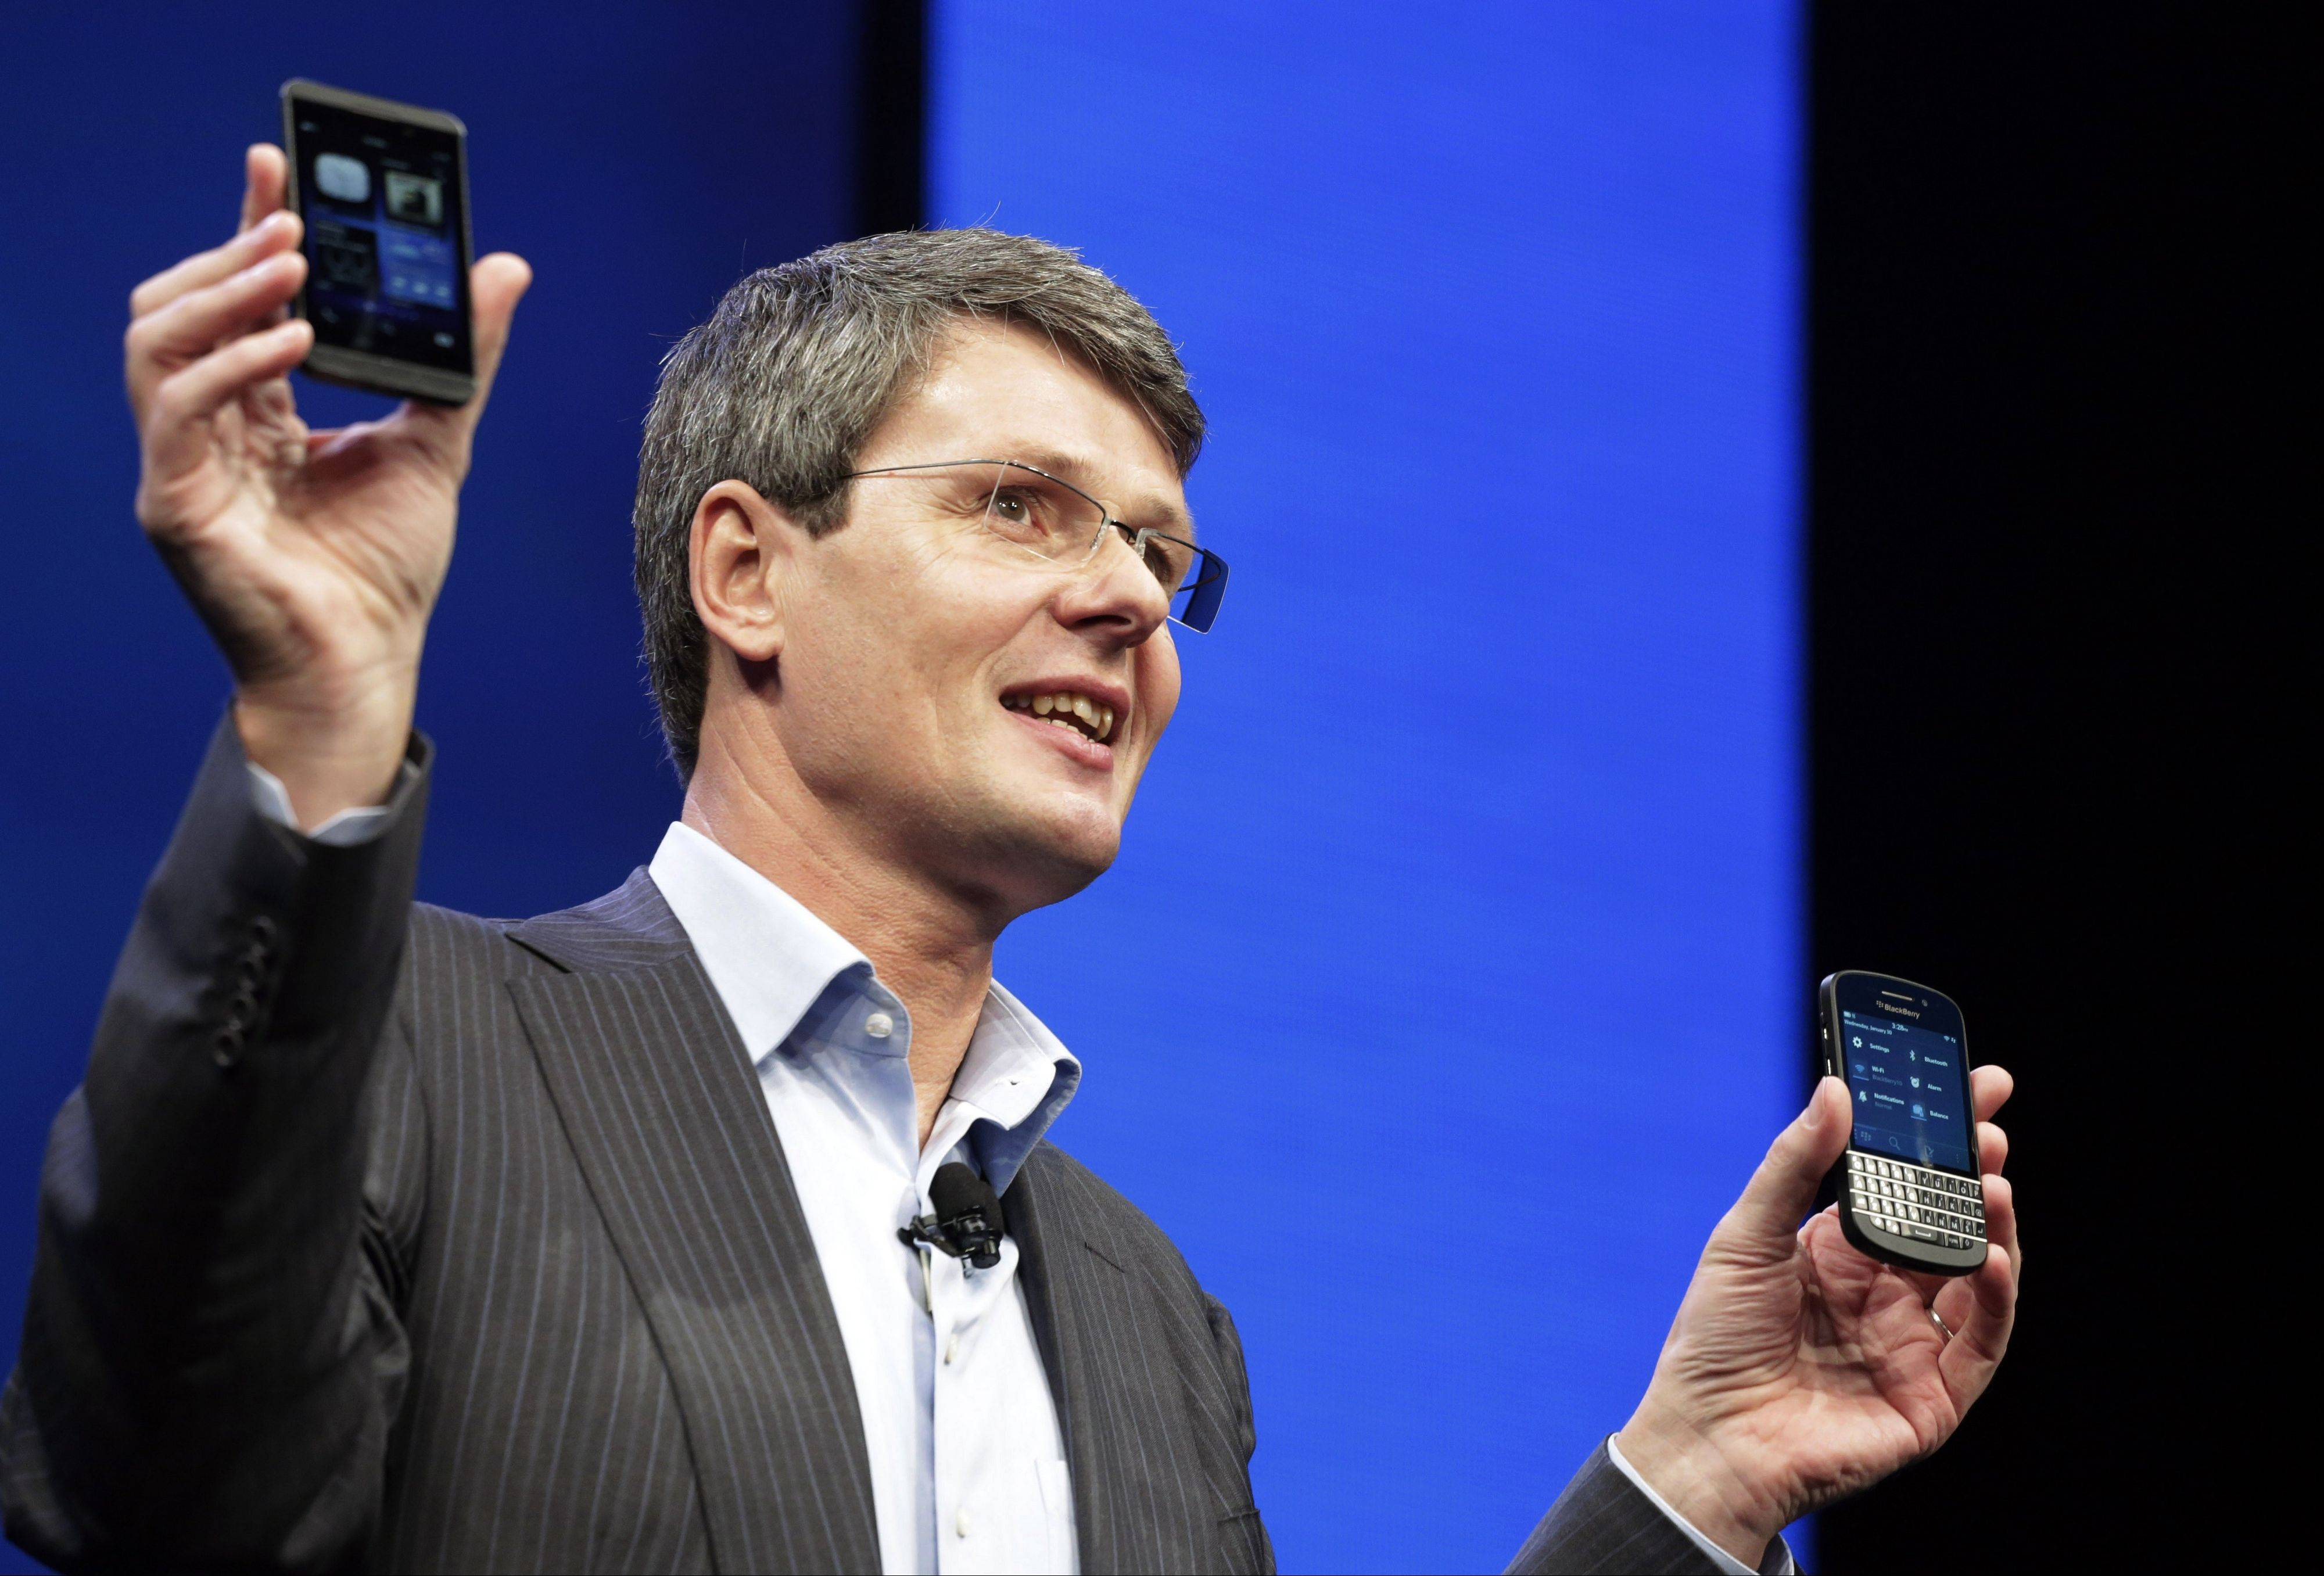 Thorsten Heins, CEO of Research in Motion, introduces the BlackBerry 10, Wednesday in New York. The maker of the BlackBerry smartphone is promising a speedy browser, a superb typing experience and the ability to keep work and personal identities separate on the same phone, the fruit of a crucial, long-overdue makeover for the Canadian company.